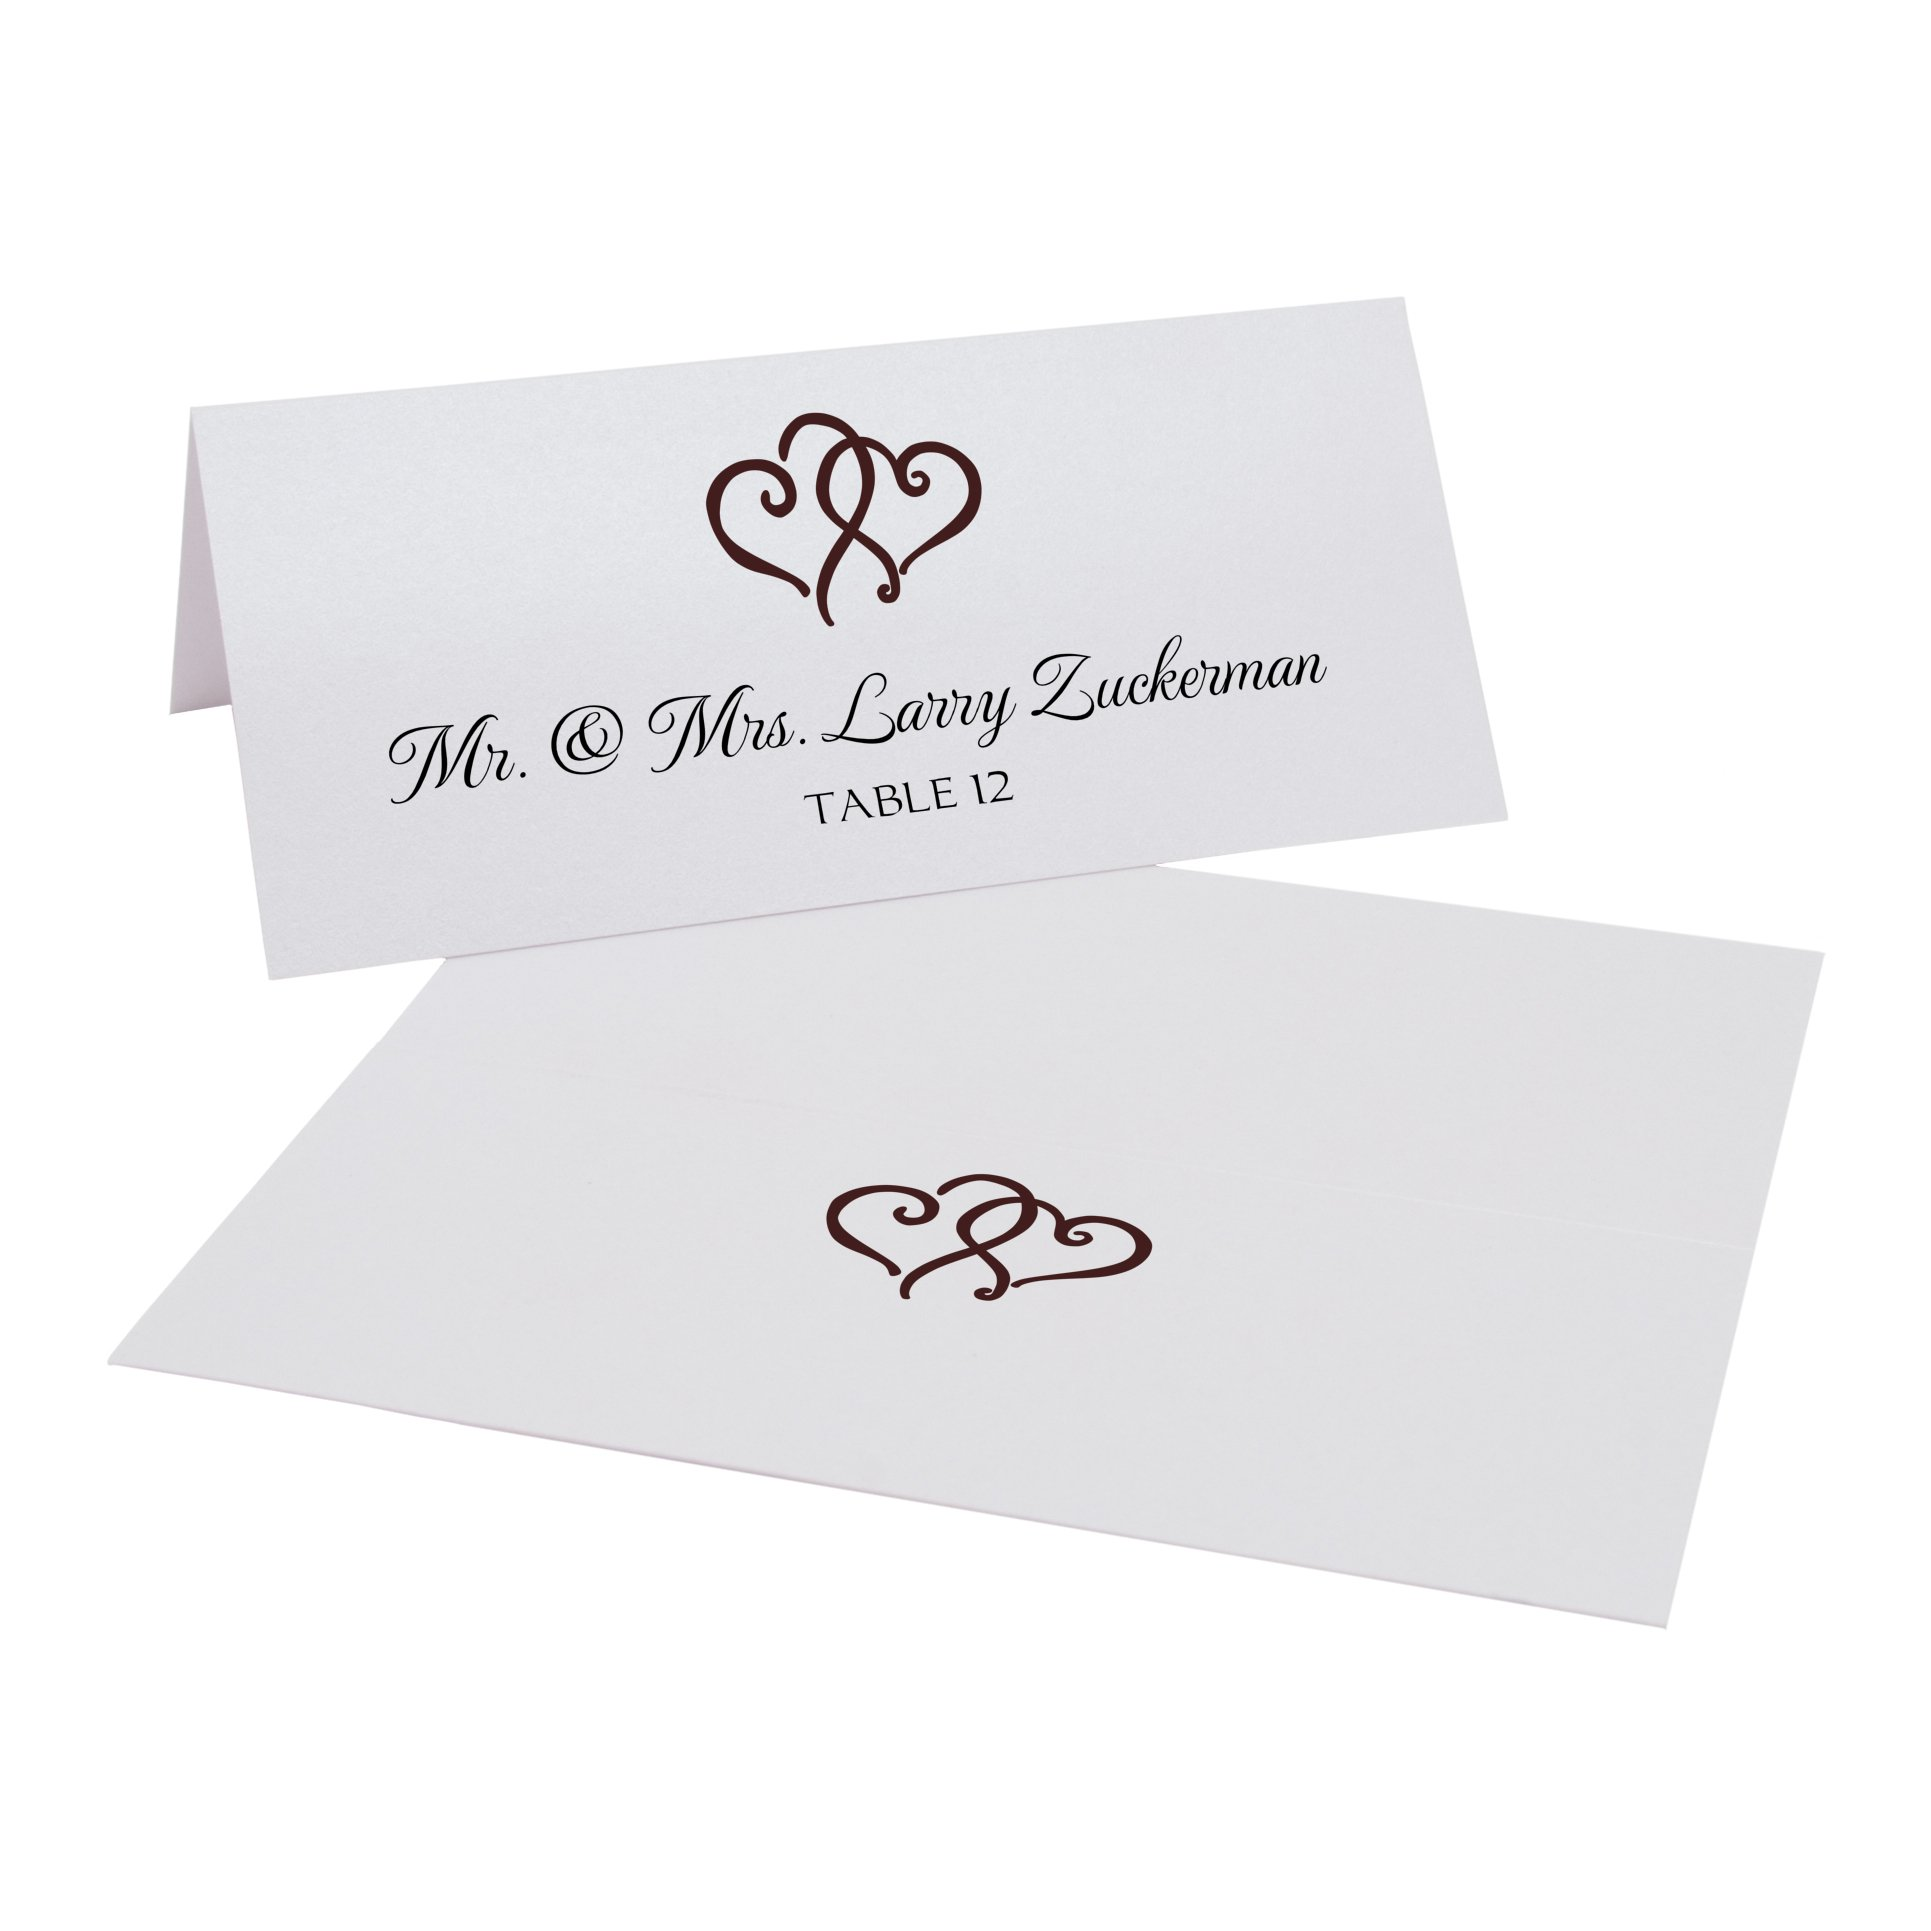 Linked Hearts Place Cards, Pearl White, Chocolate, Set of 375